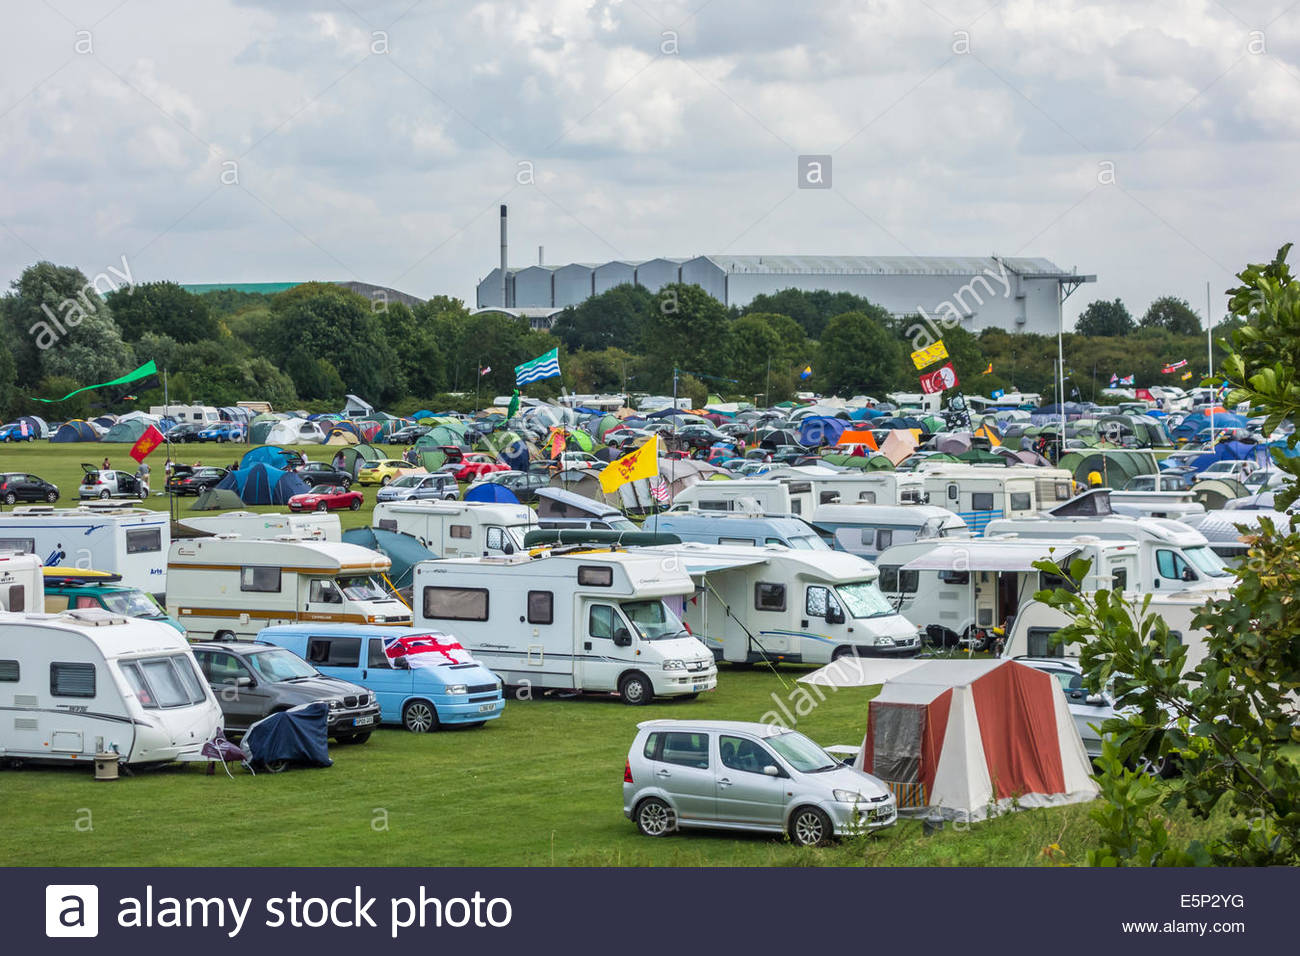 The campsite on Coldhams Common for the Cambridge Folk Festival, 2014, near to the airport. - Stock Image